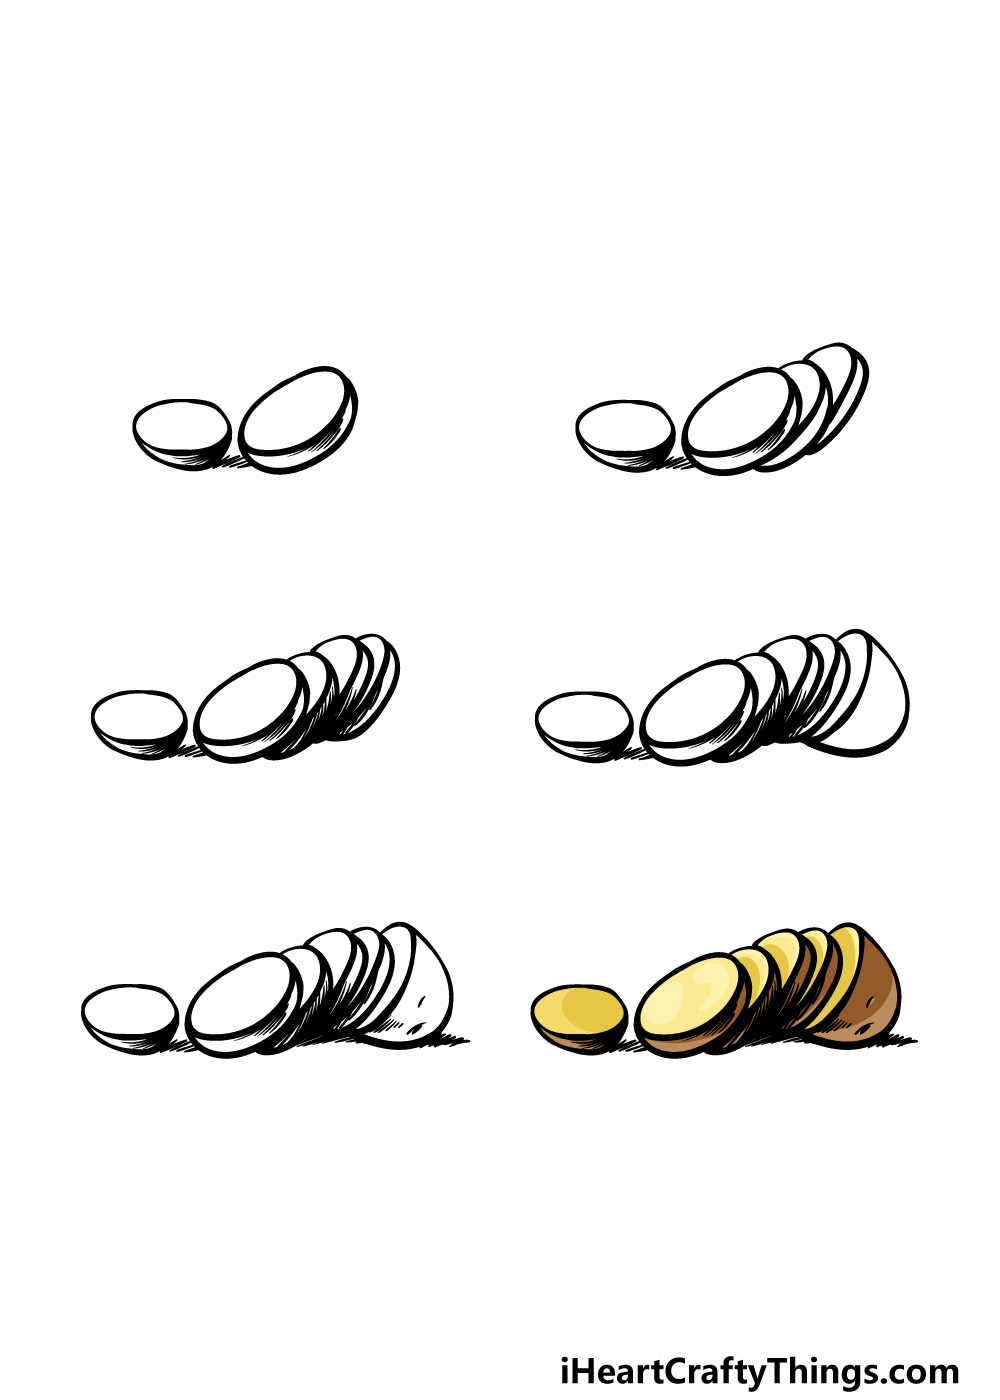 how to draw a potato in 6 steps